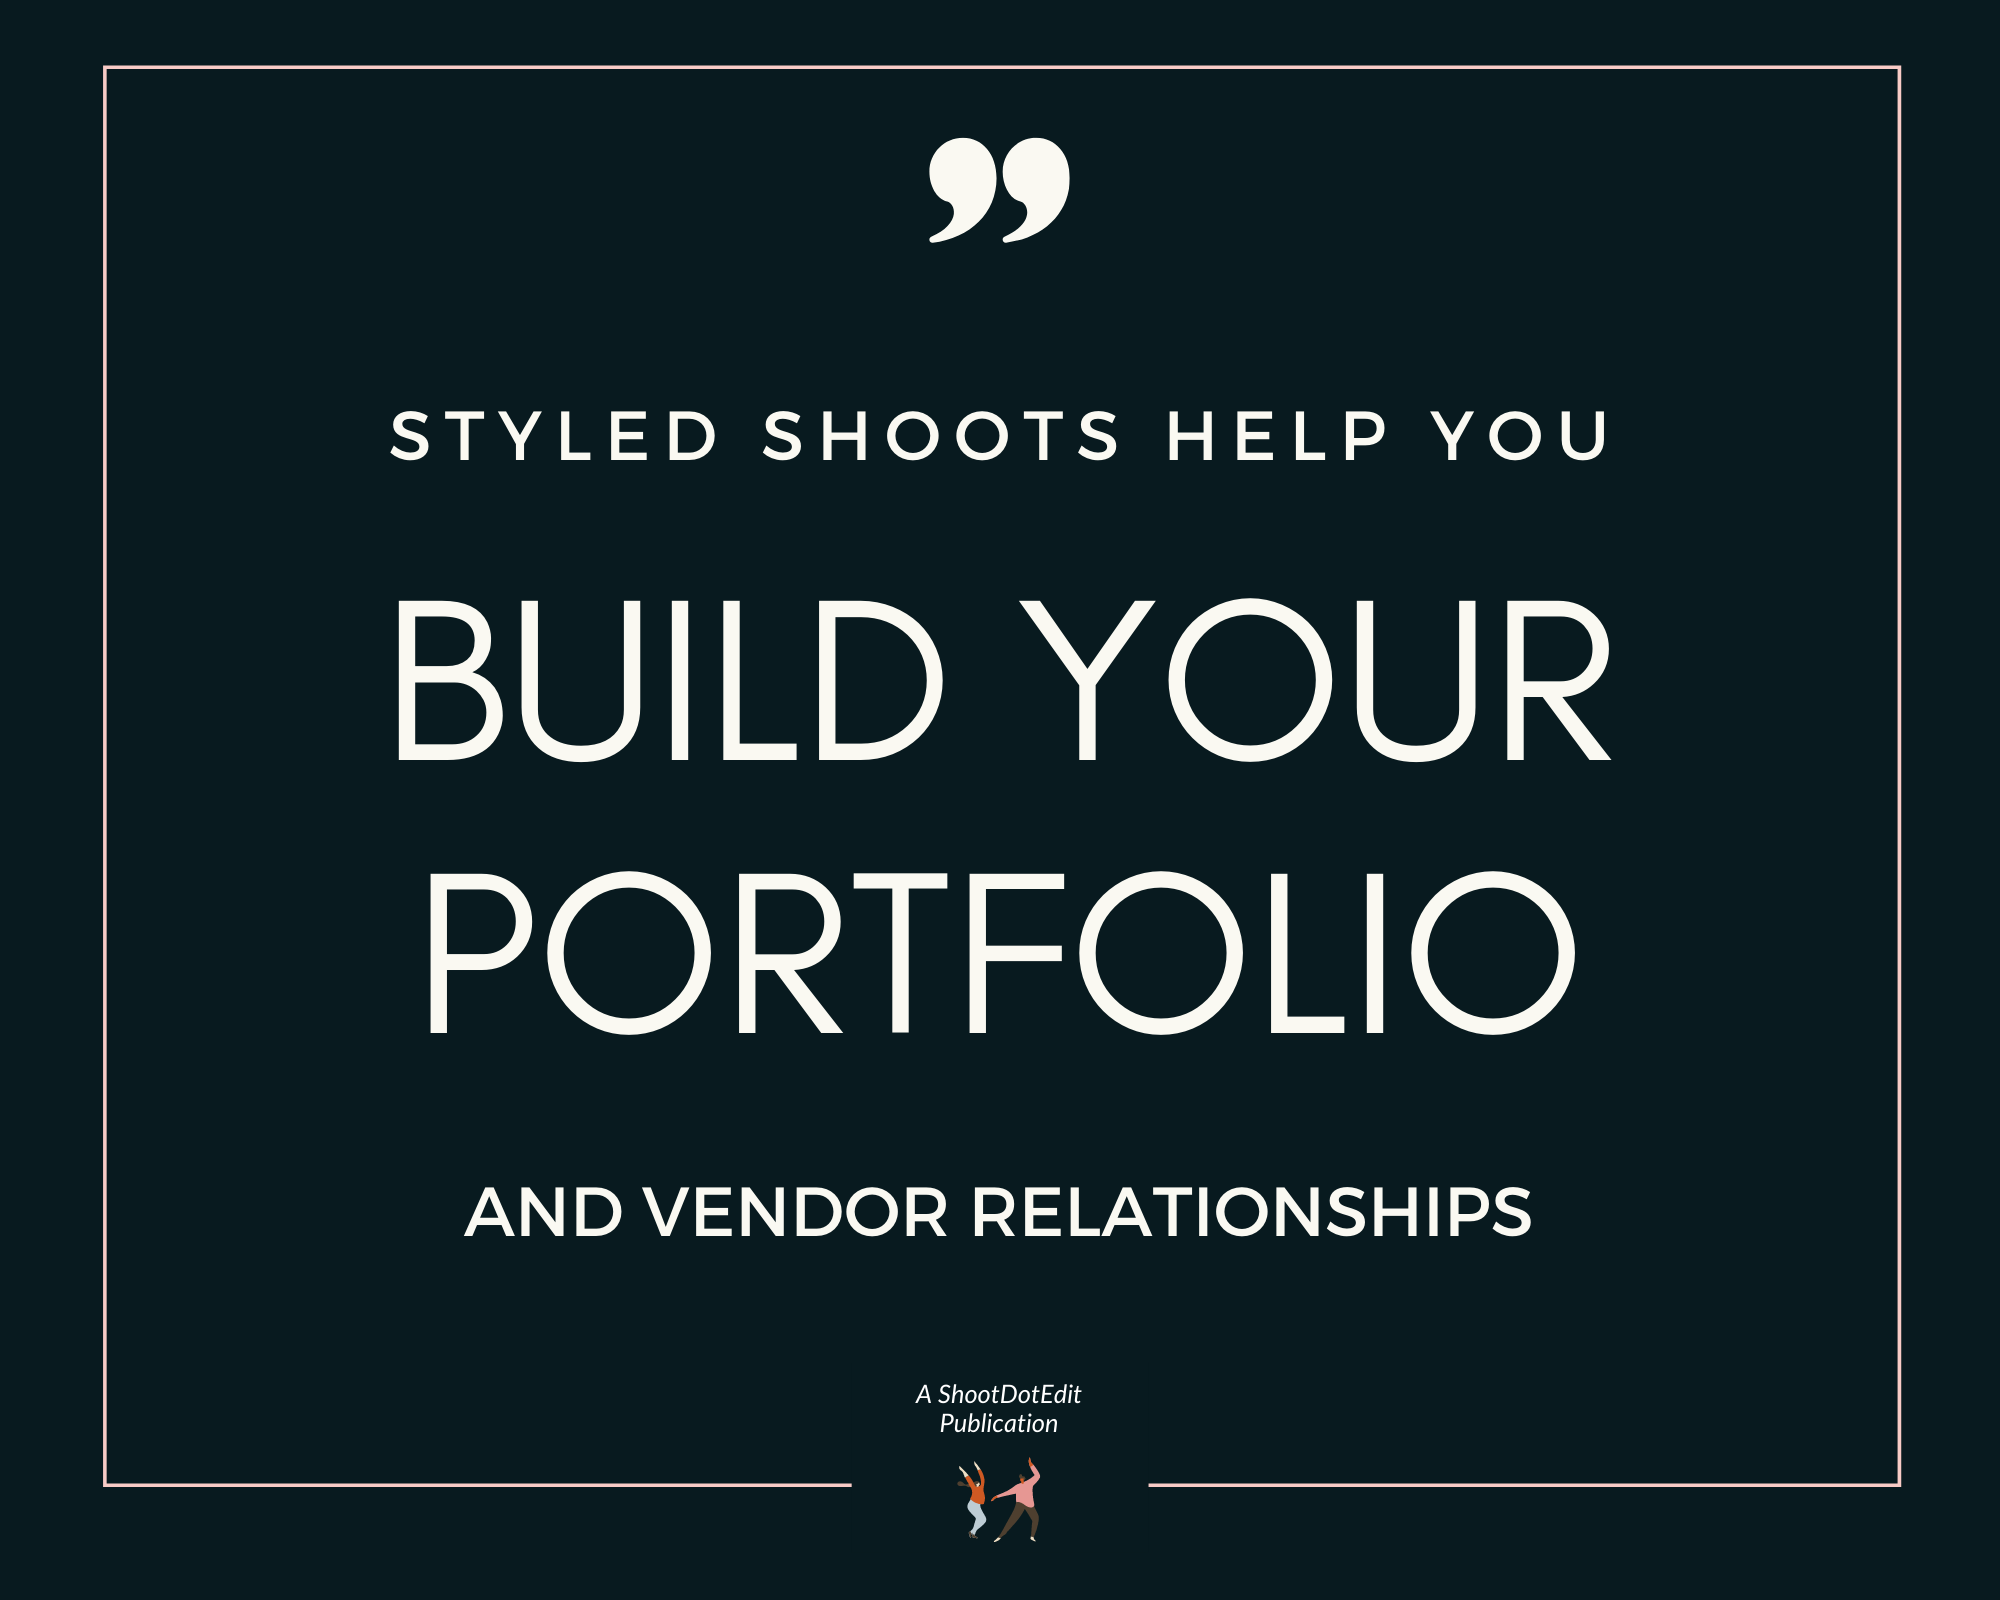 Infographic displaying - styled shoots help you build your portfolio and vendor relationships